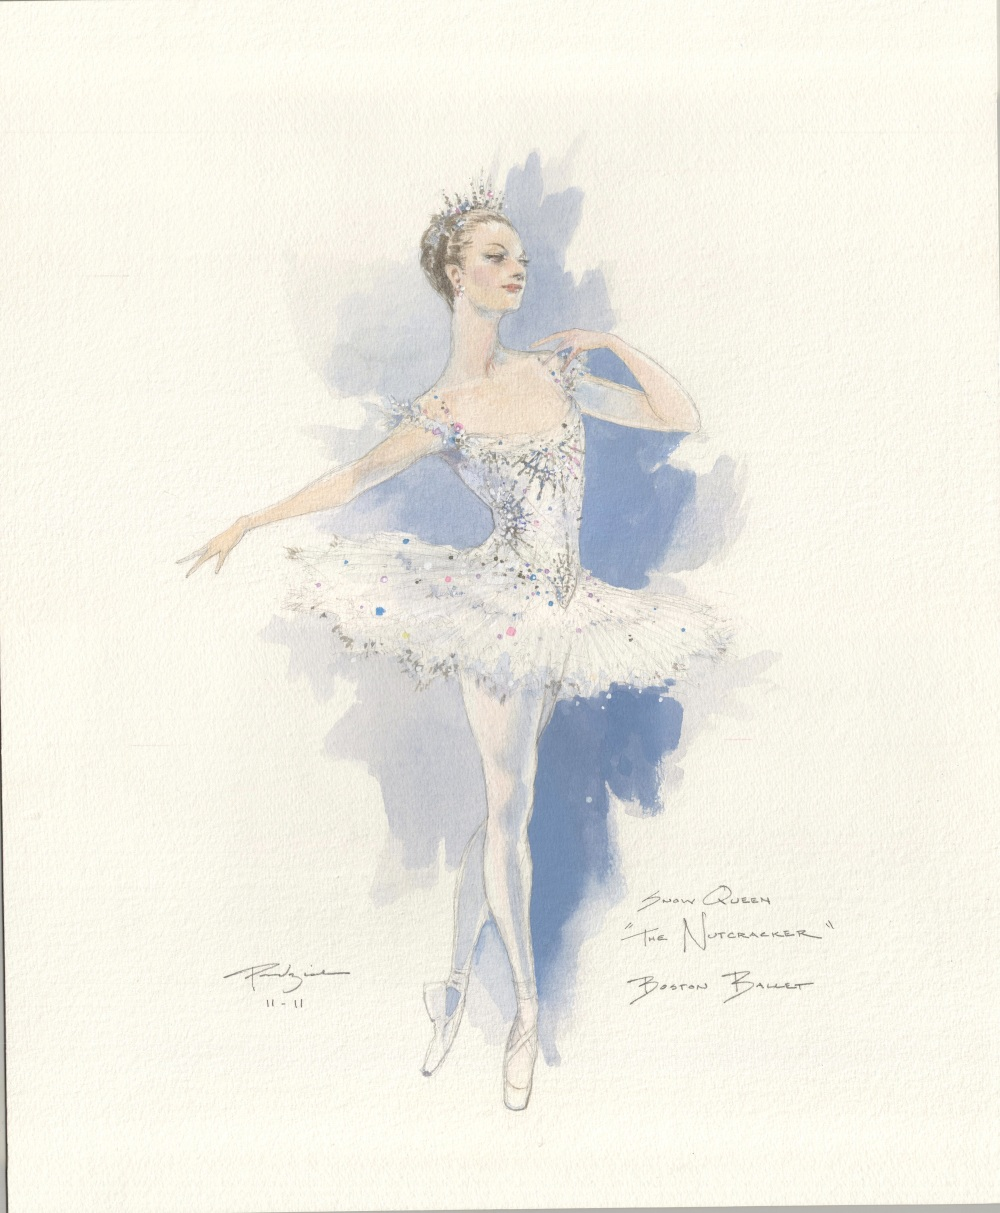 Illustrations by Robert Perdziola courtesy of Boston Ballet